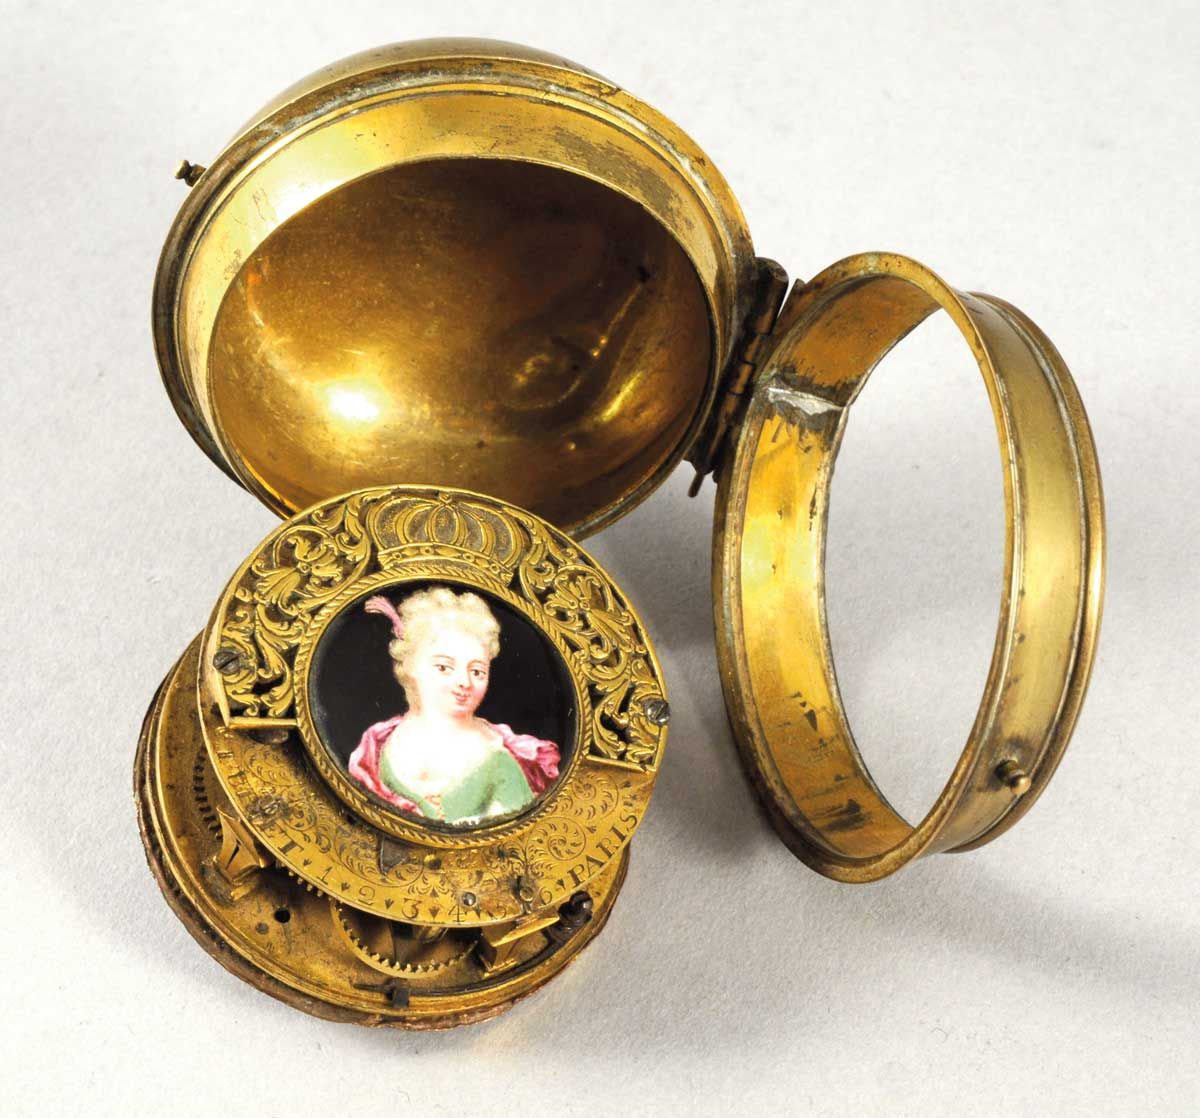 """Beautiful and rare watch called 'onion' in brass with miniature from the end of the 17th century or beginning of the 18th.  Montre à coq dite """"oignon"""" en laiton, fin XVIIe-début XVIIIe siècle, signée """"Thuret Paris"""", diam.: 5,5cm. Rouillac SVV.  #T"""